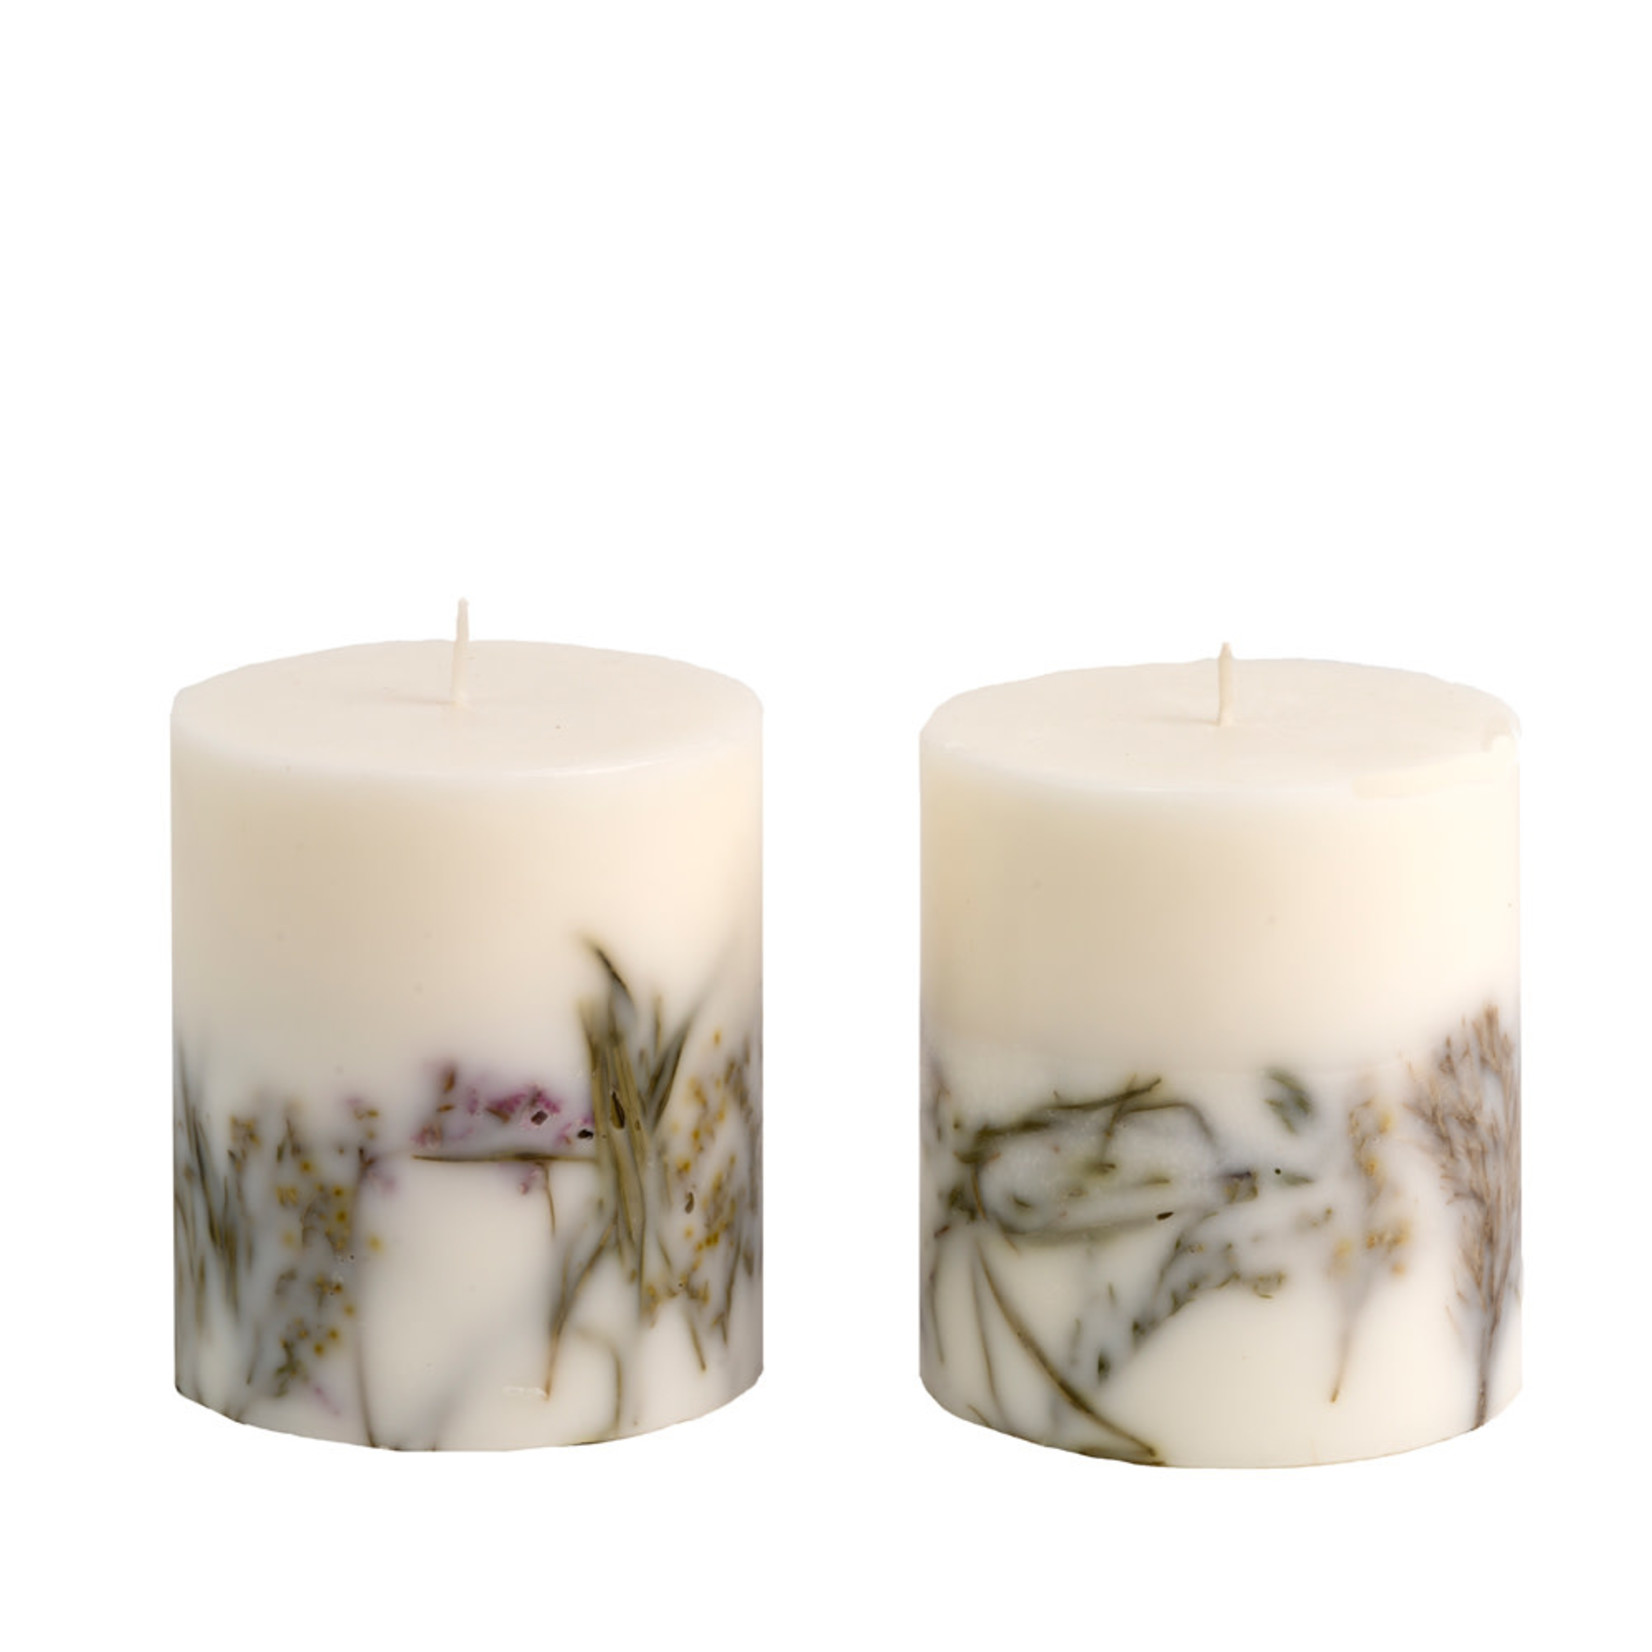 Home Society Candle Fidenza WH L